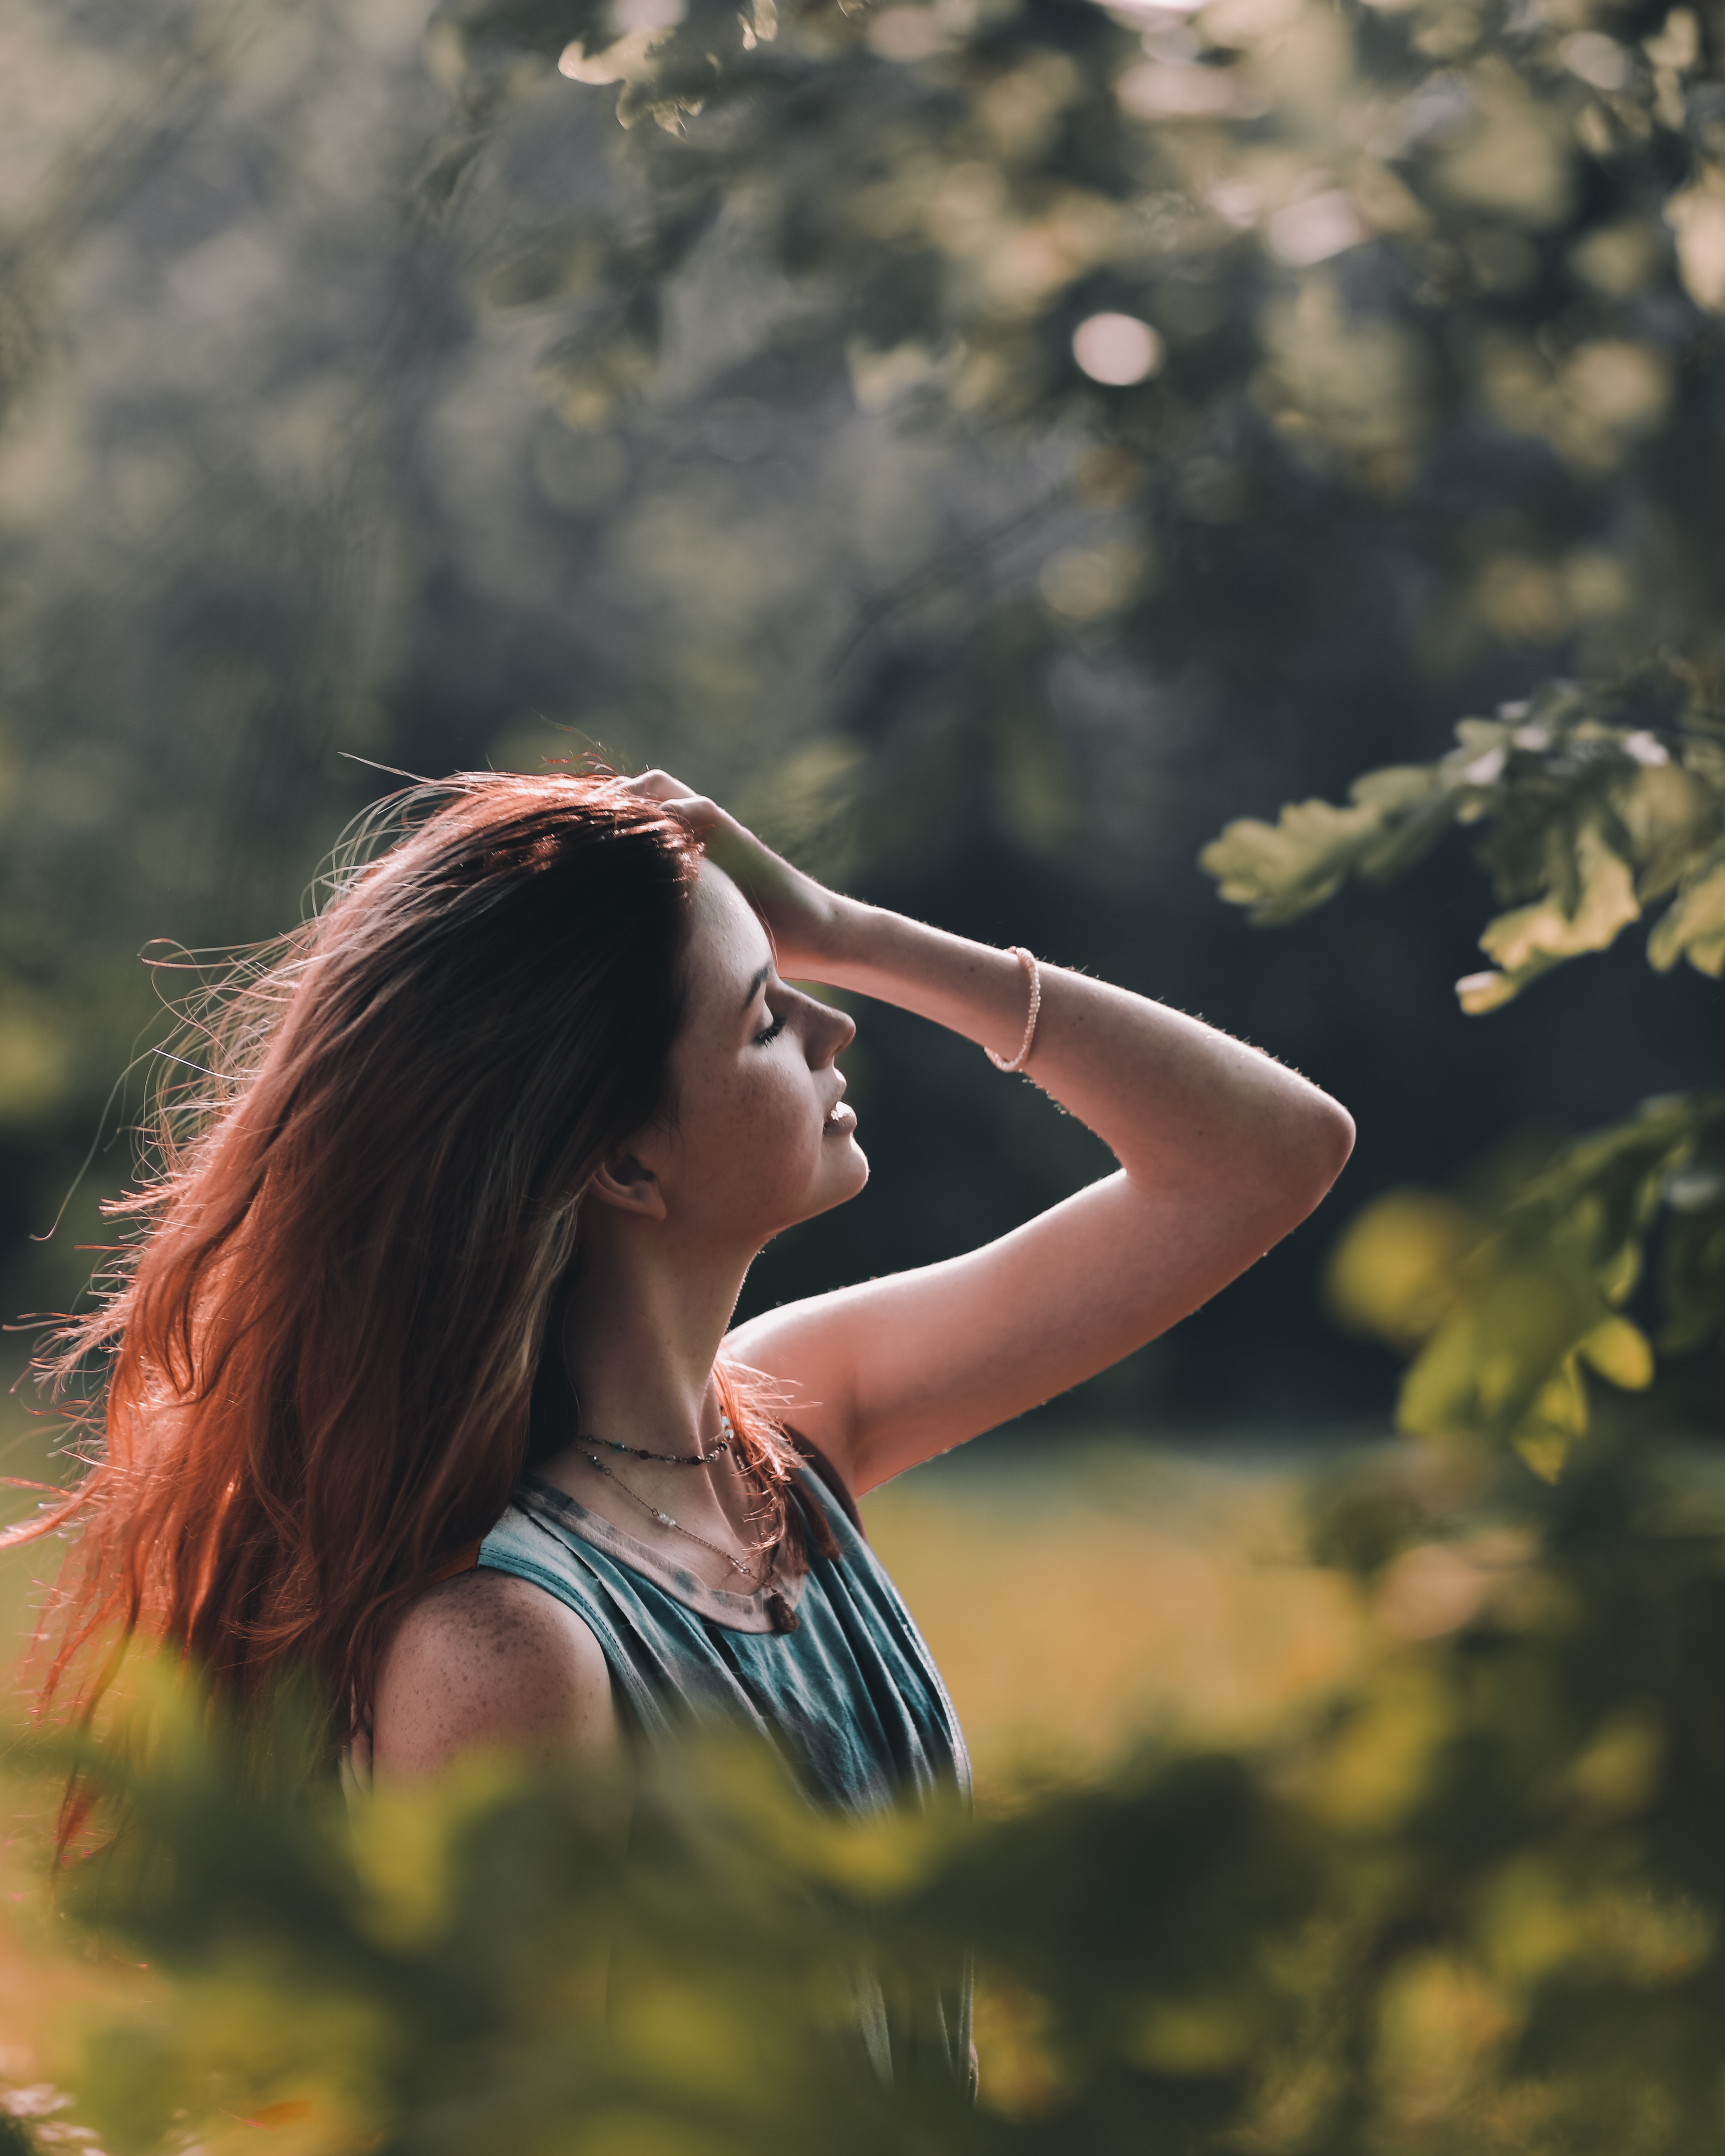 selective focus photography of woman holding her hair standing near trees